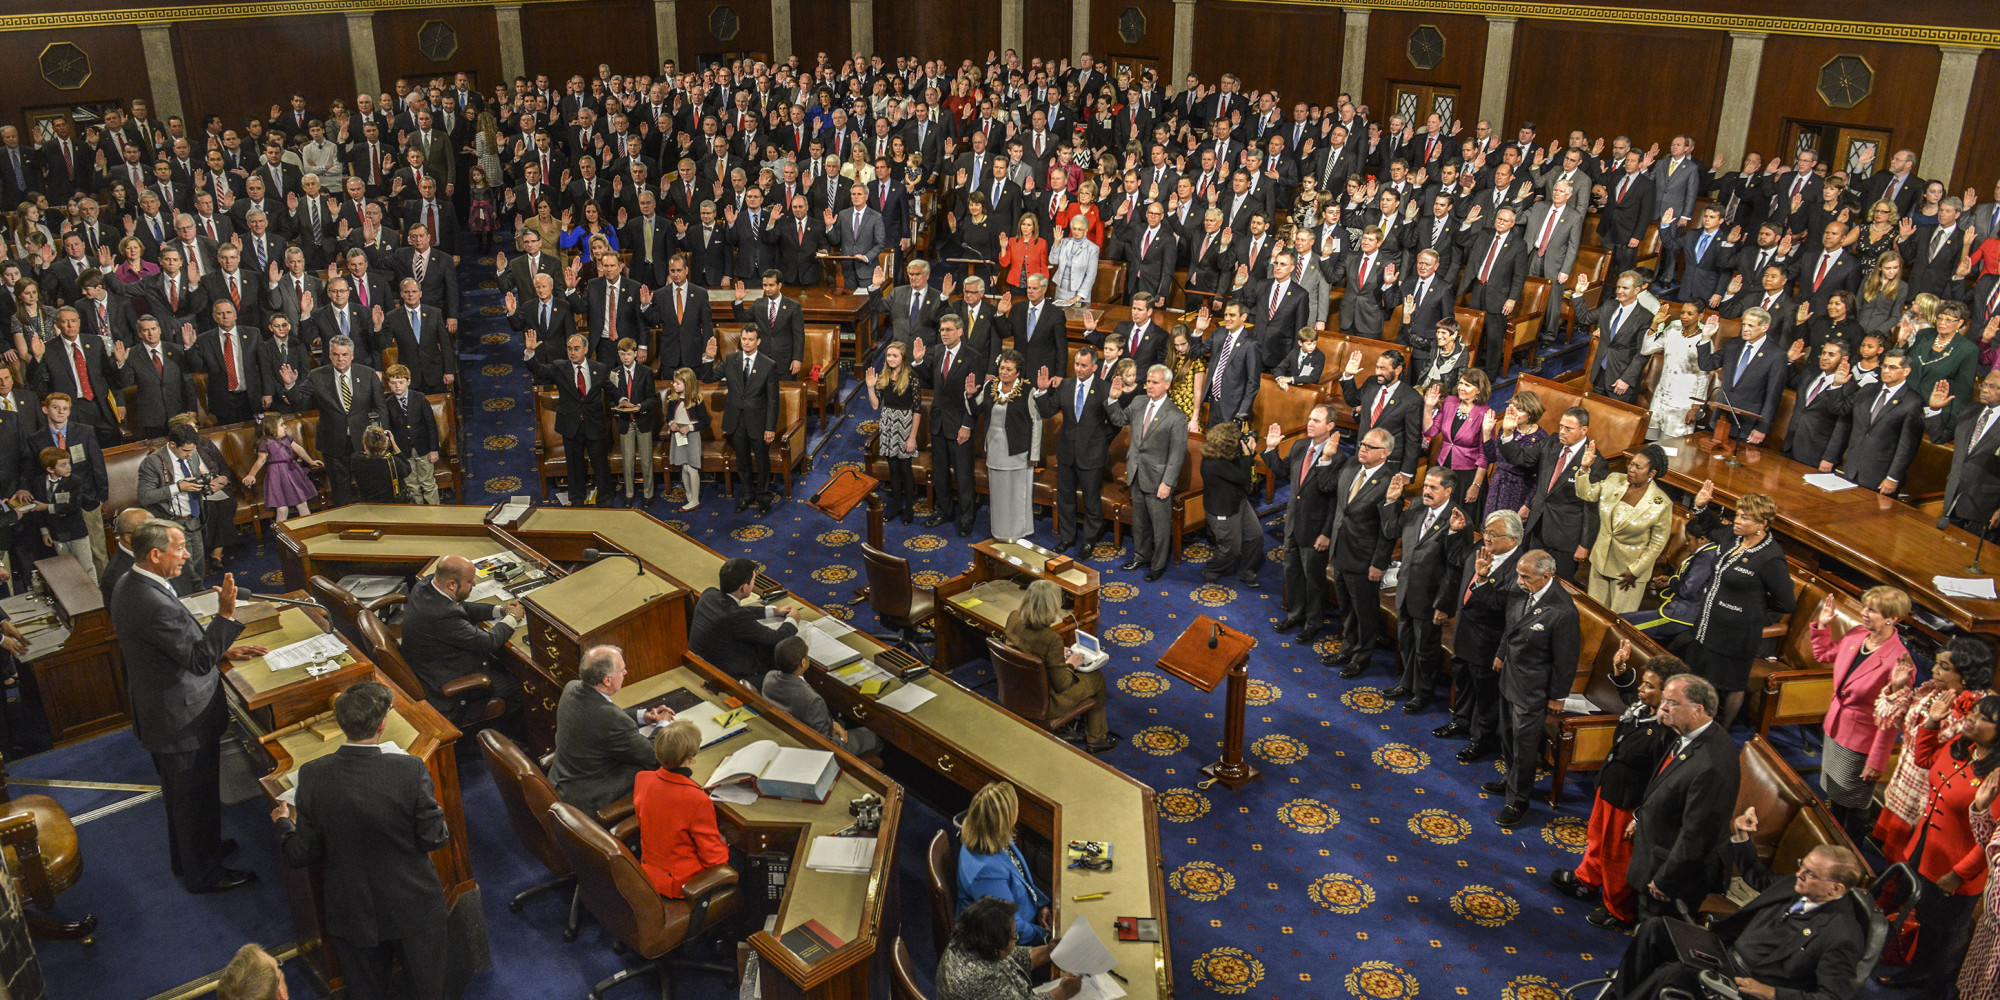 The influence of the law on congress